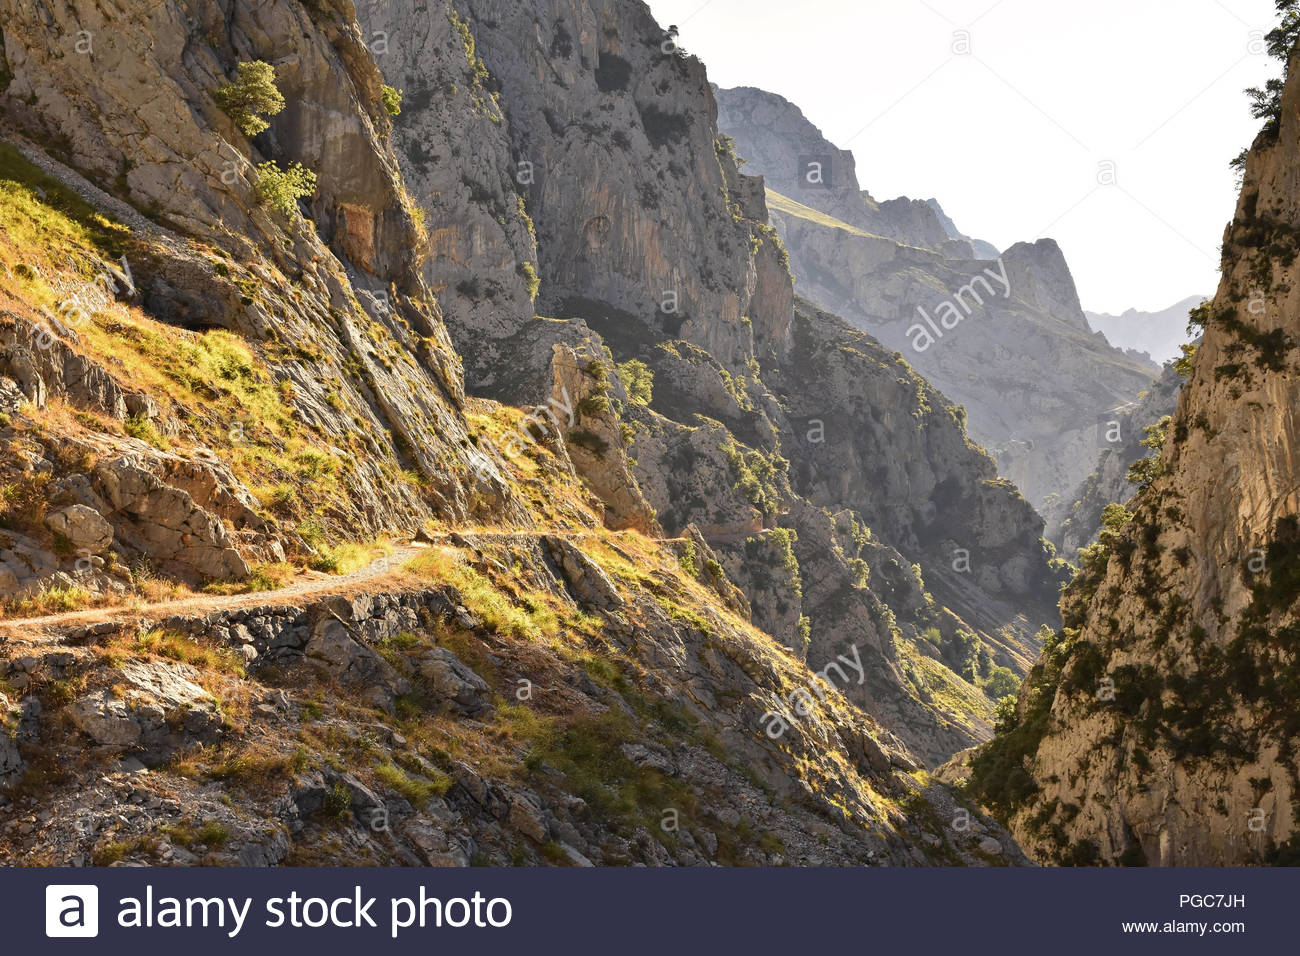 Cares Gorge route - hiking trail between towns of Poncebos and Cain in Picos de Europa National Park Cantabria Northern Spain. - Stock Image